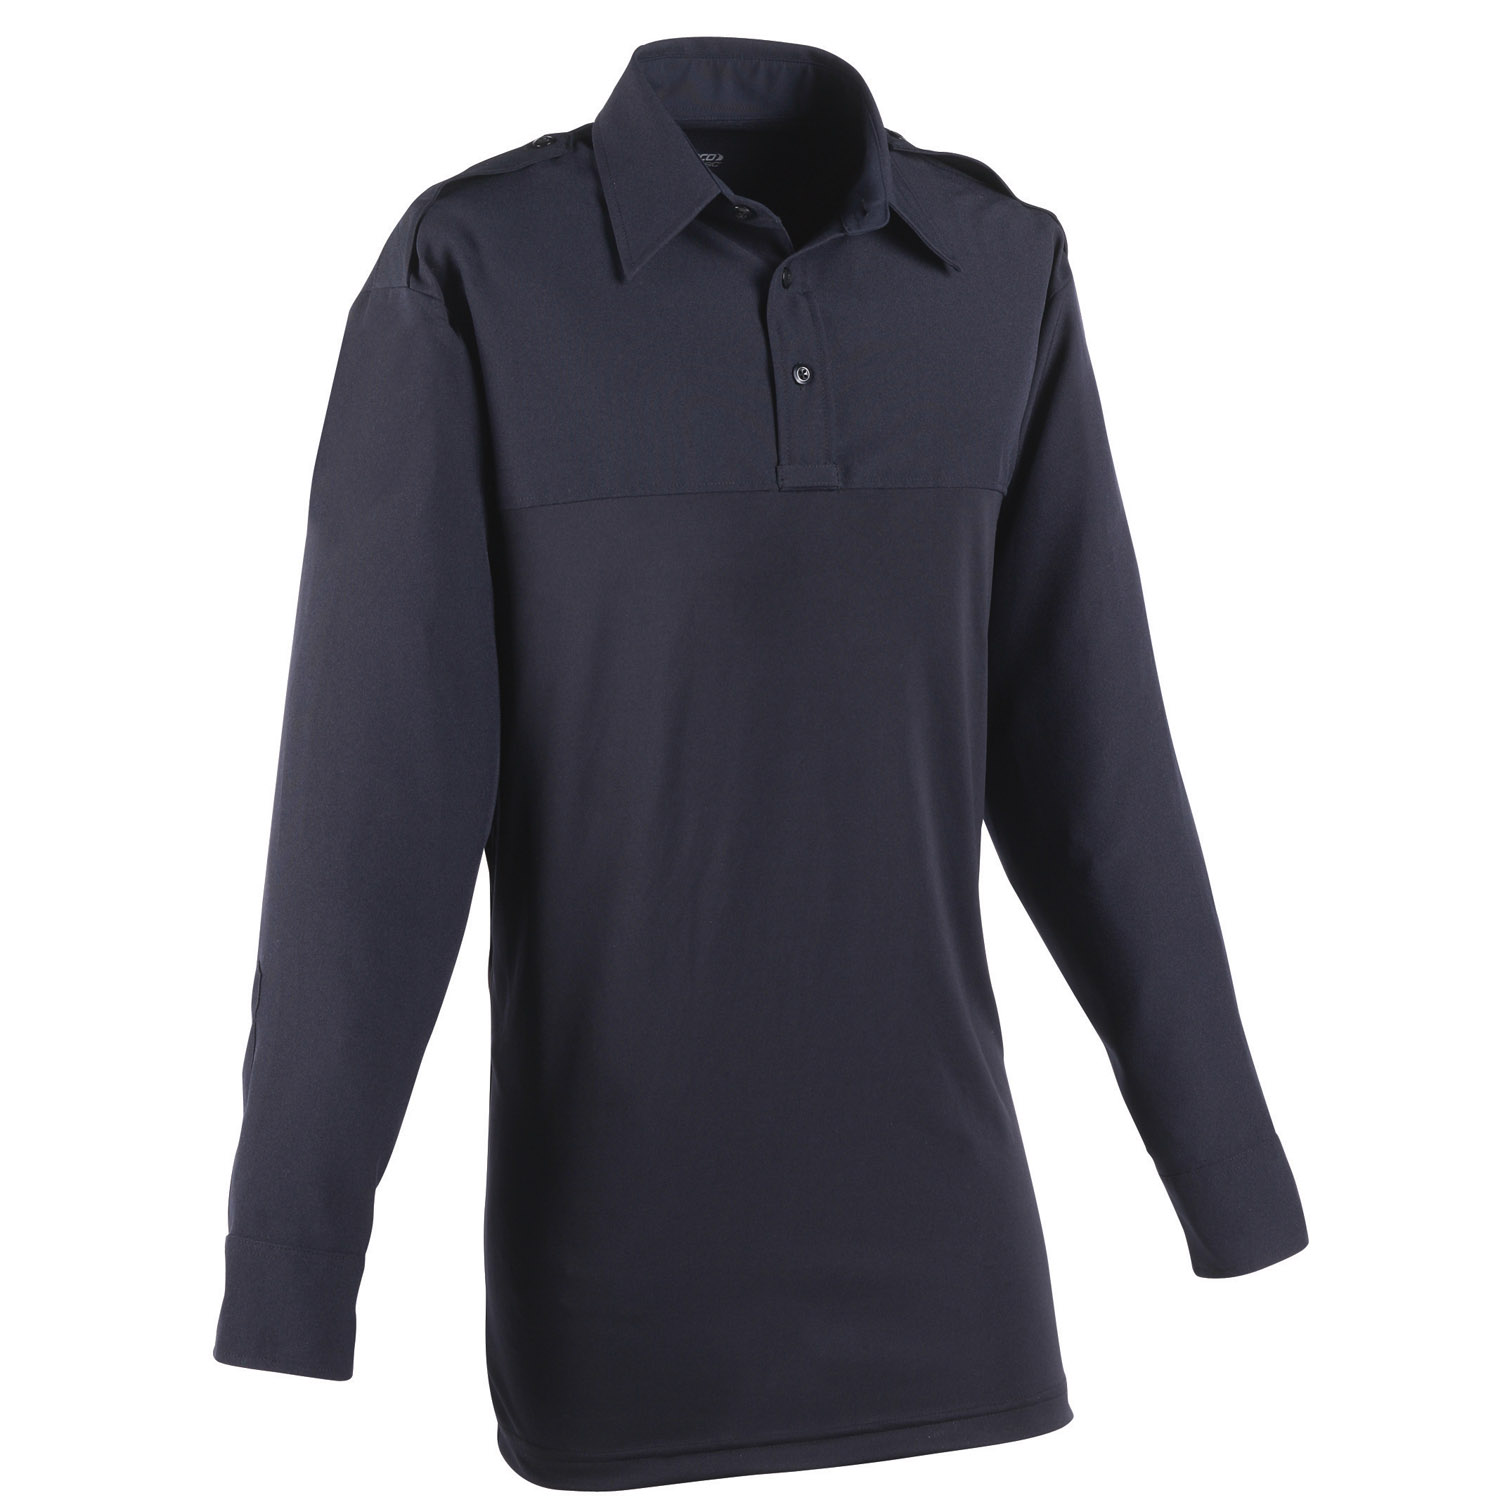 Elbeco Undervest Long Sleeve Shirt